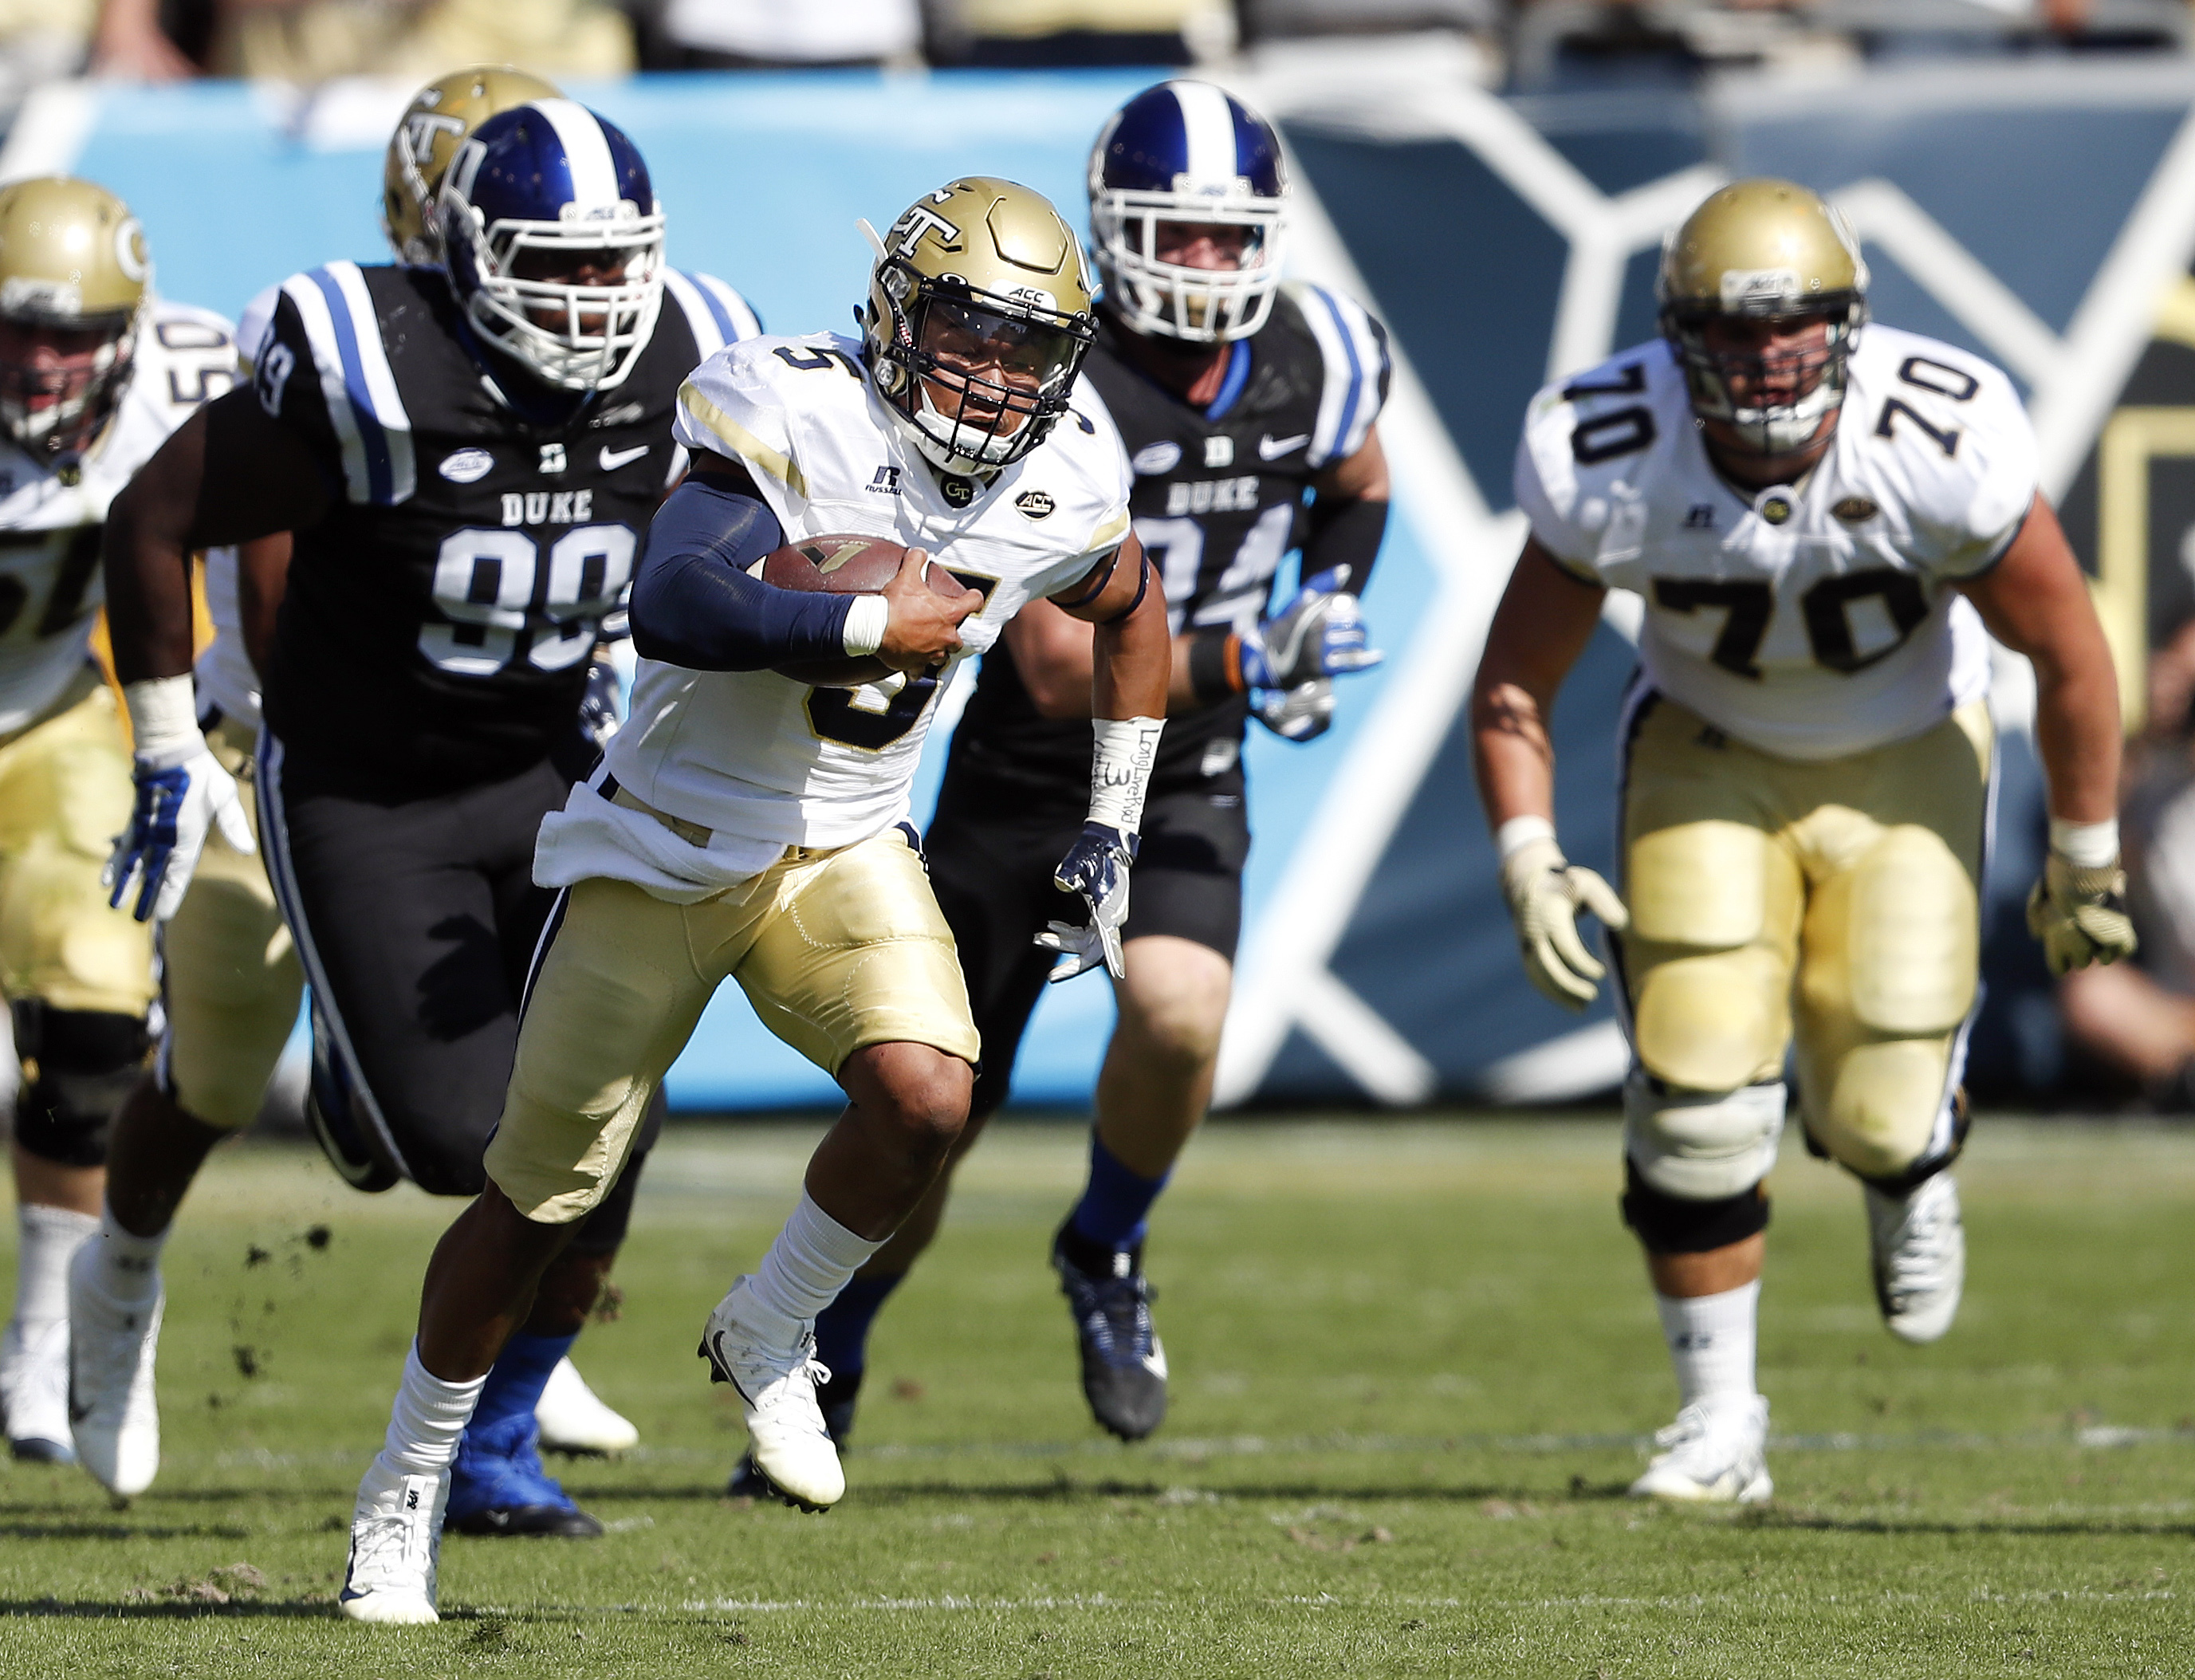 FILE - In this Saturday, Oct. 29, 2016, file photo, Georgia Tech quarterback Justin Thomas breaks away from the Duke defense in the first half of an NCAA college football game in Atlanta.  Thomas has thrilled fans before with his electrifying runs through